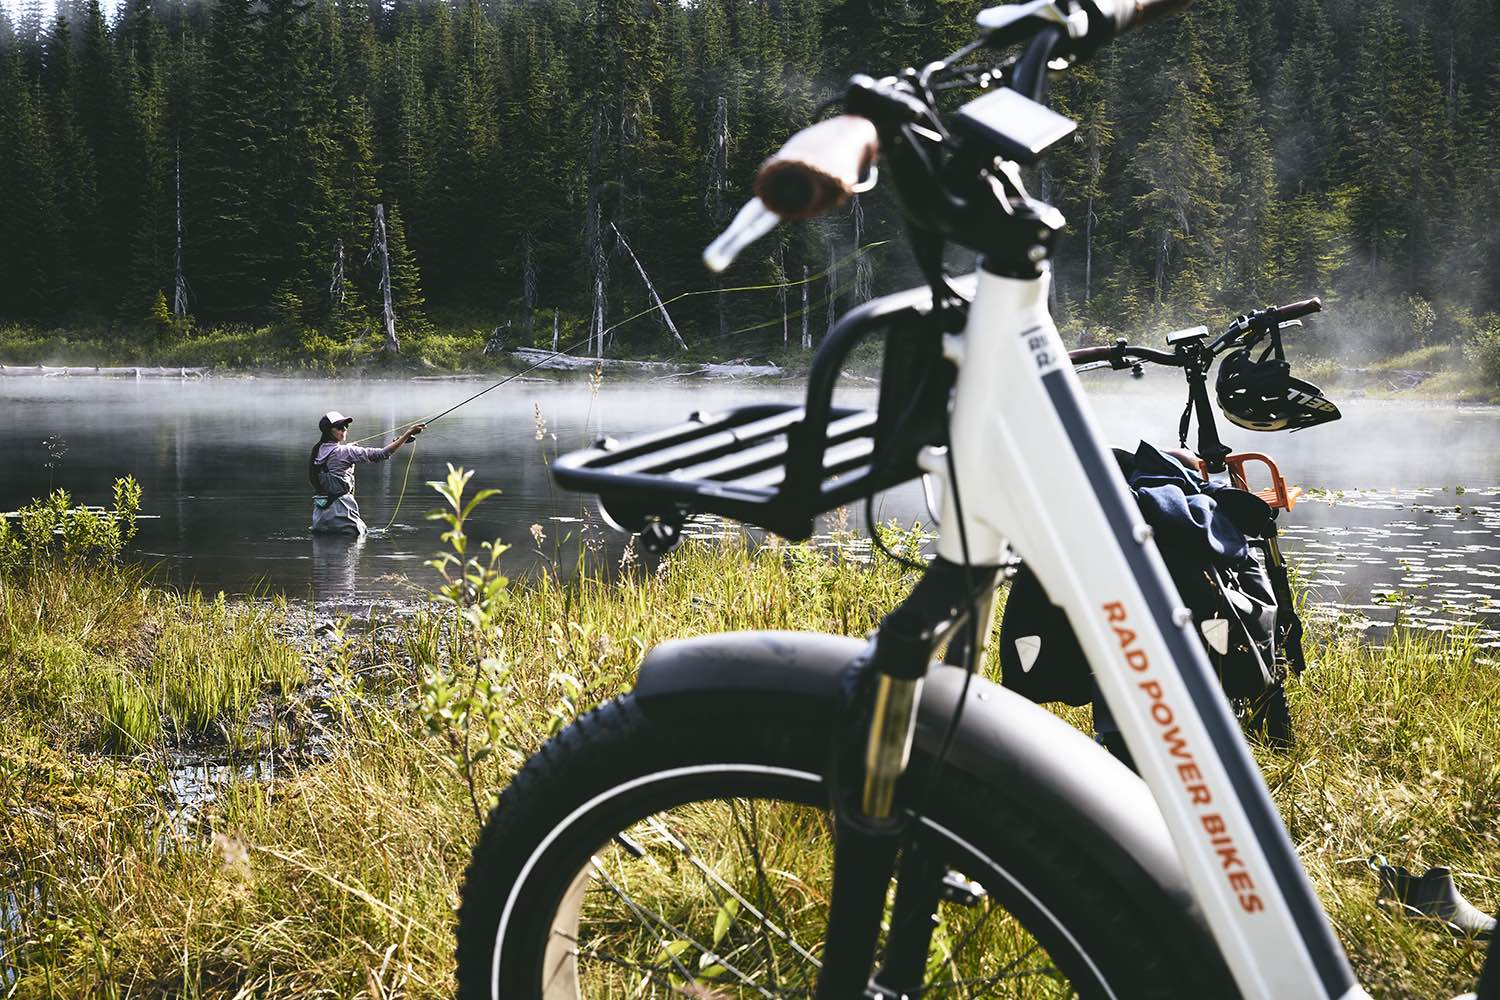 A woman fishes alongside her RadRover electric fat bike.